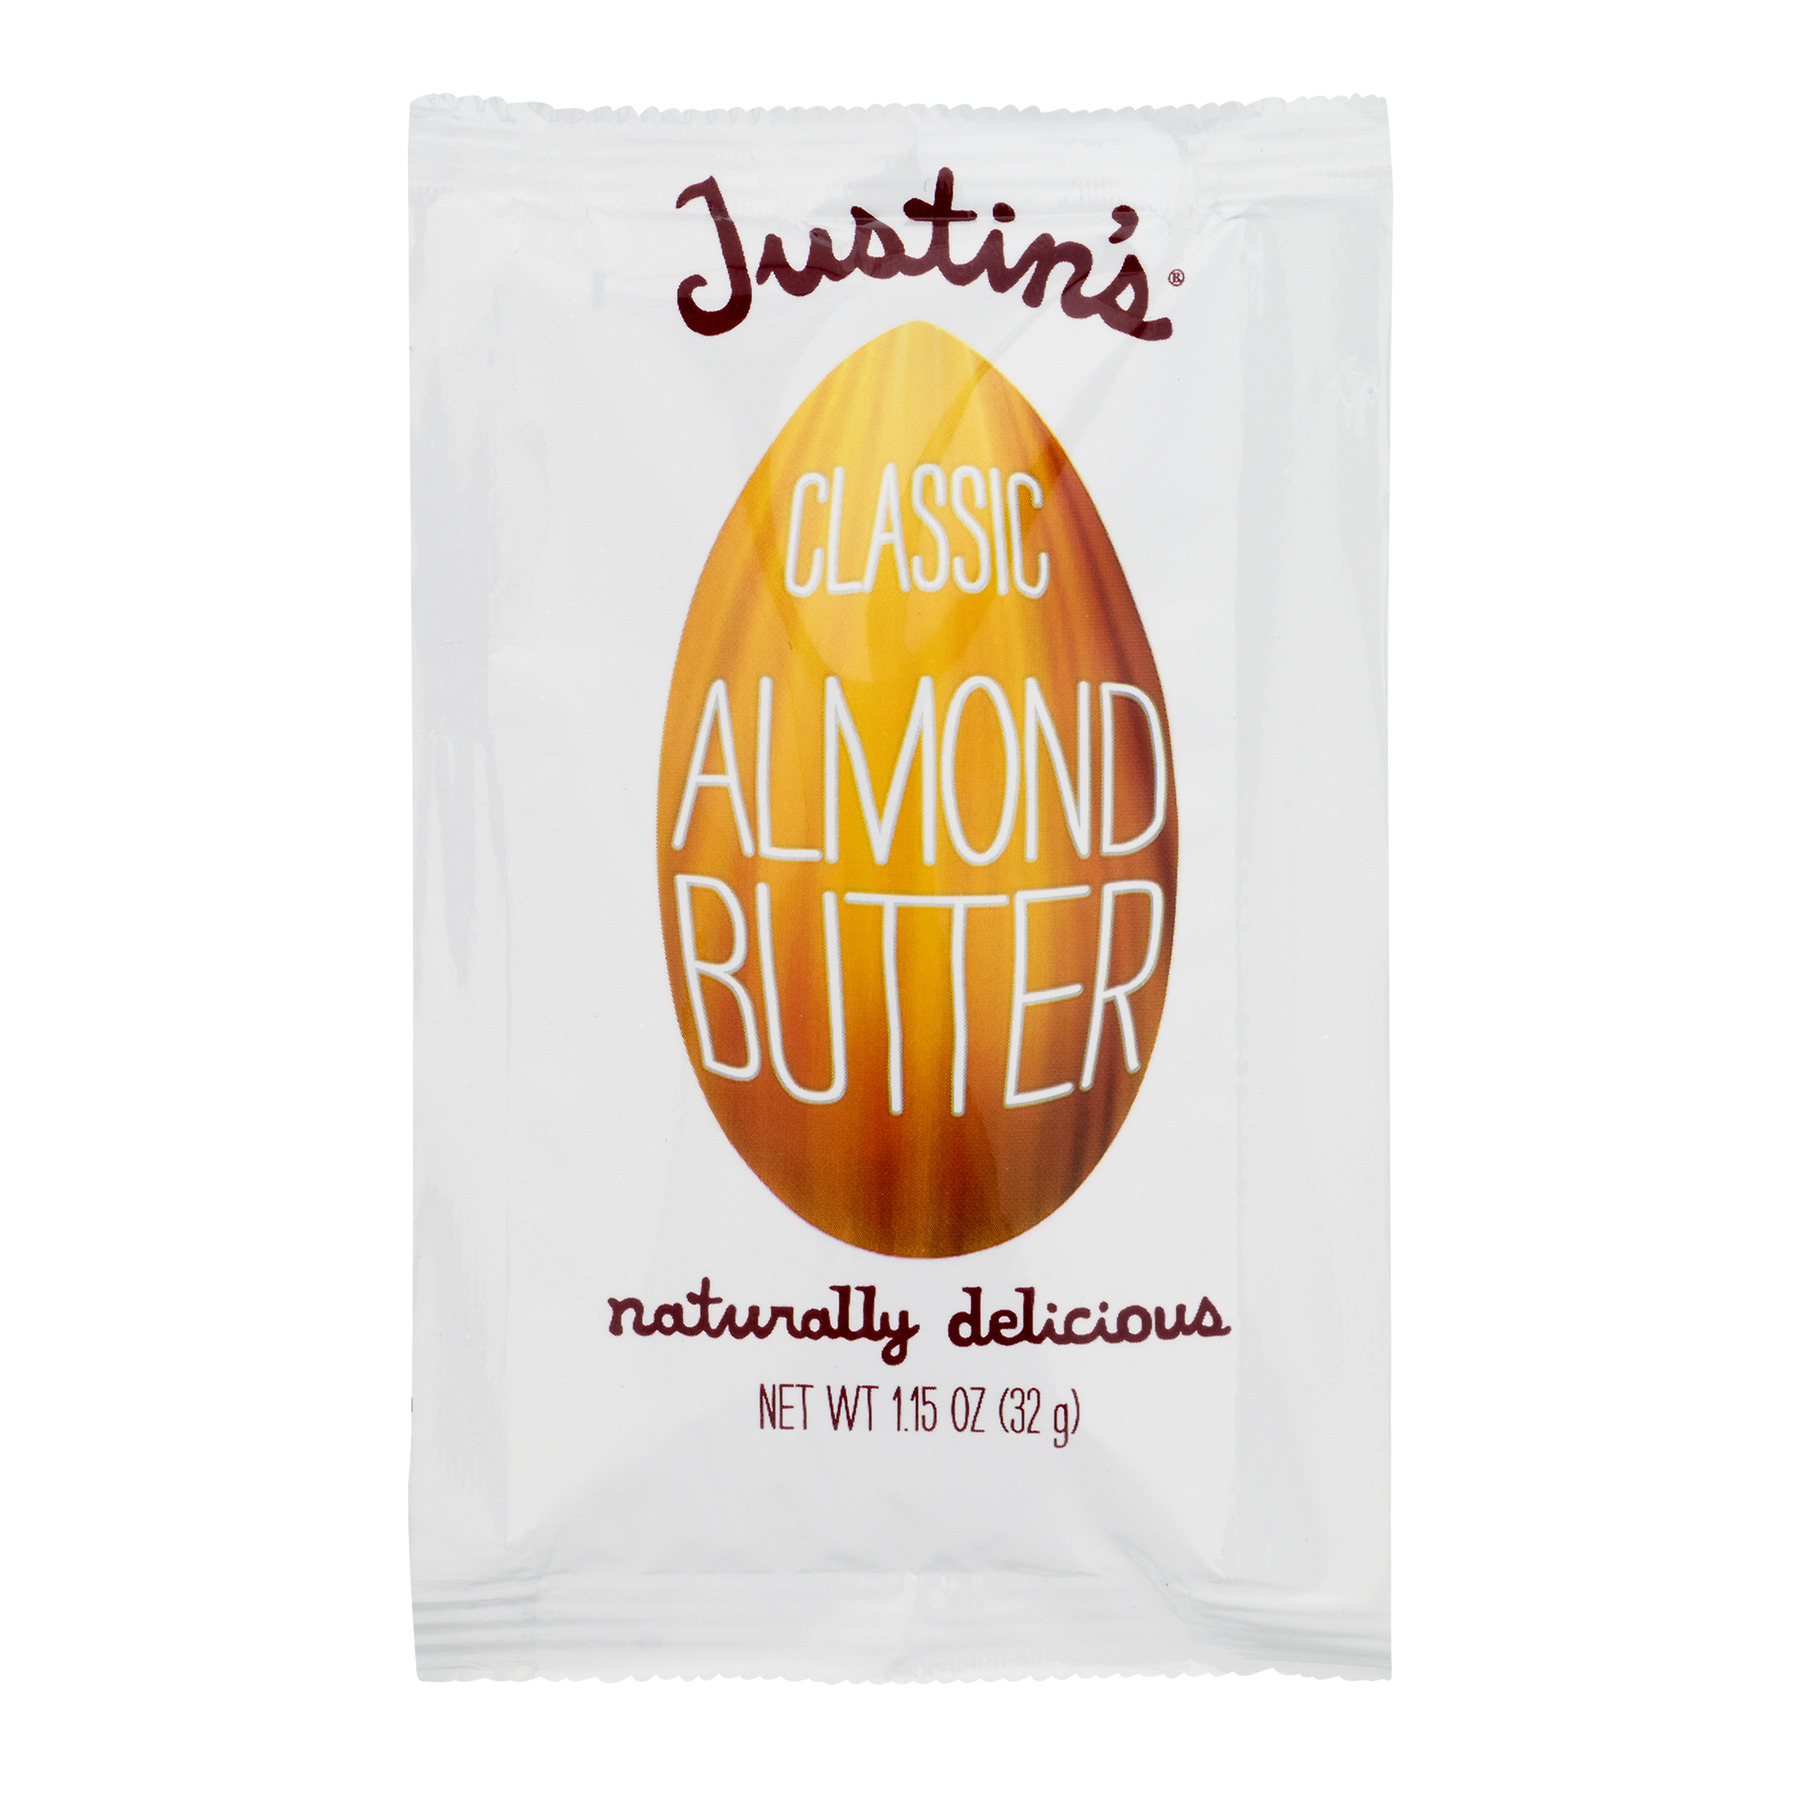 Justins Almond Butter Squeeze Packet, Classic, 1.15 Ounce (Pack of 10)